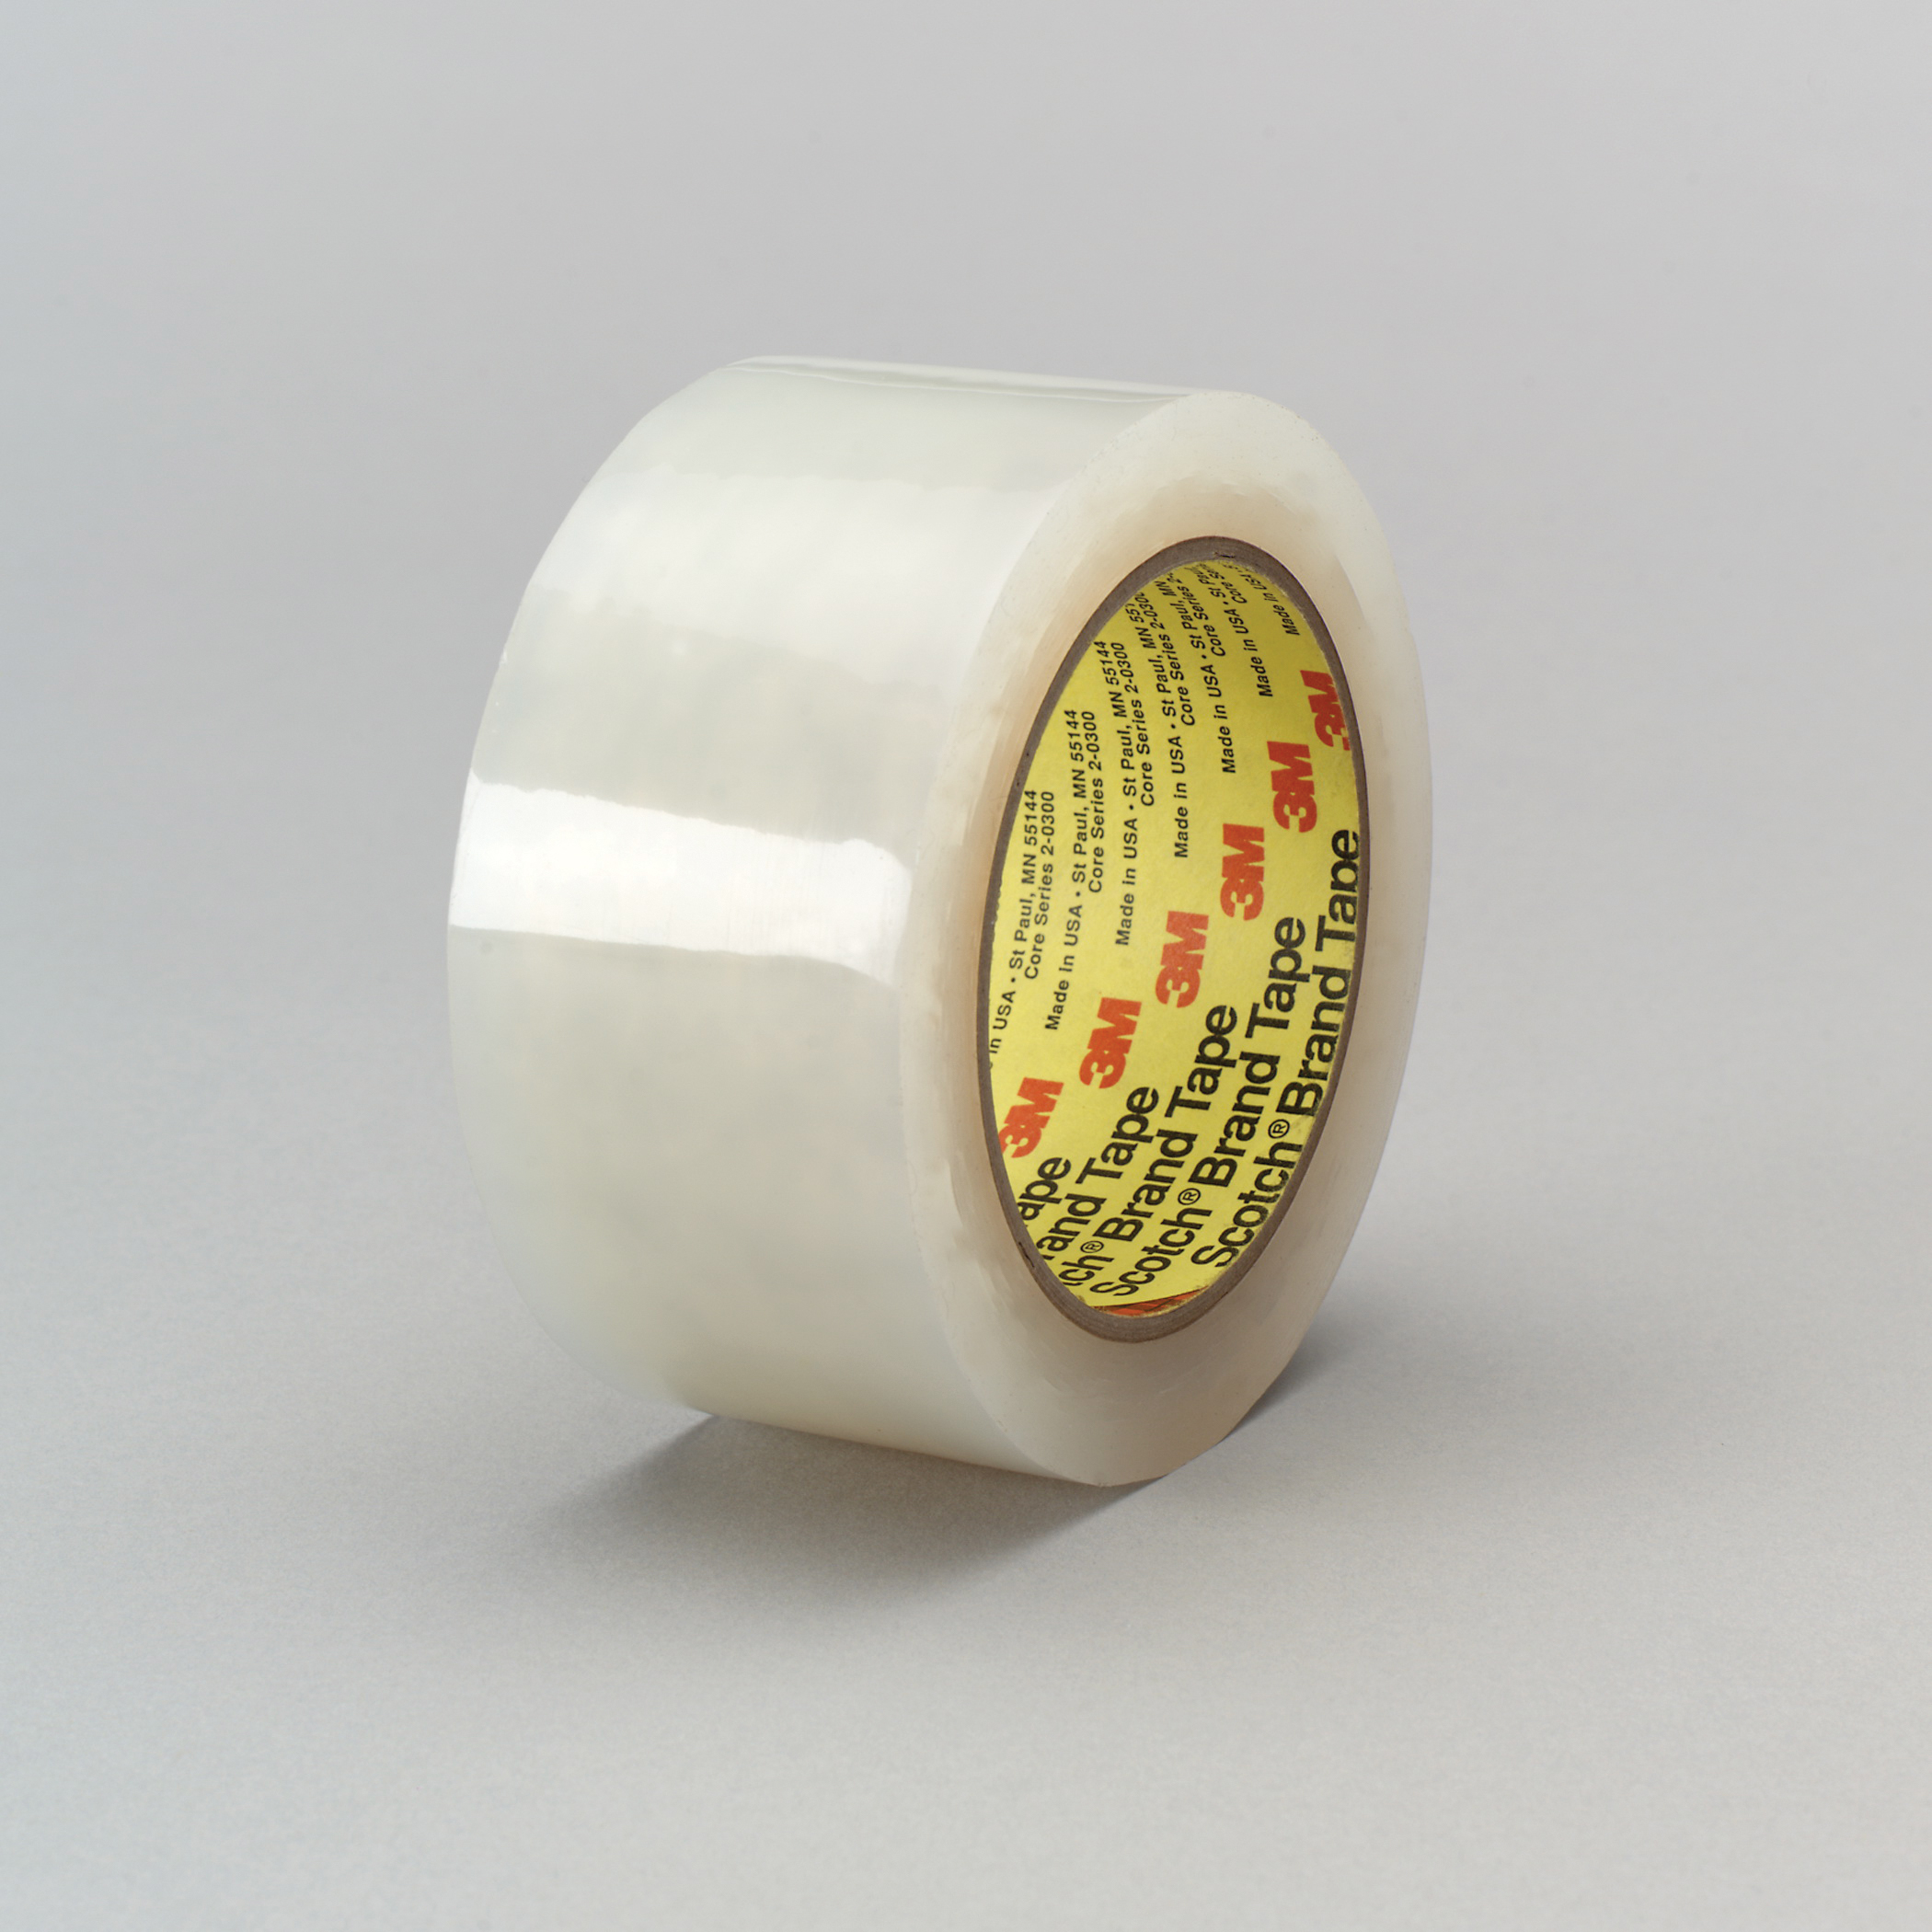 3M™ 021200-05151 Splicing Tape, 36 yd L x 2 in W, 5.1 mil THK, Acrylic Adhesive, Polyethylene Backing, Transparent